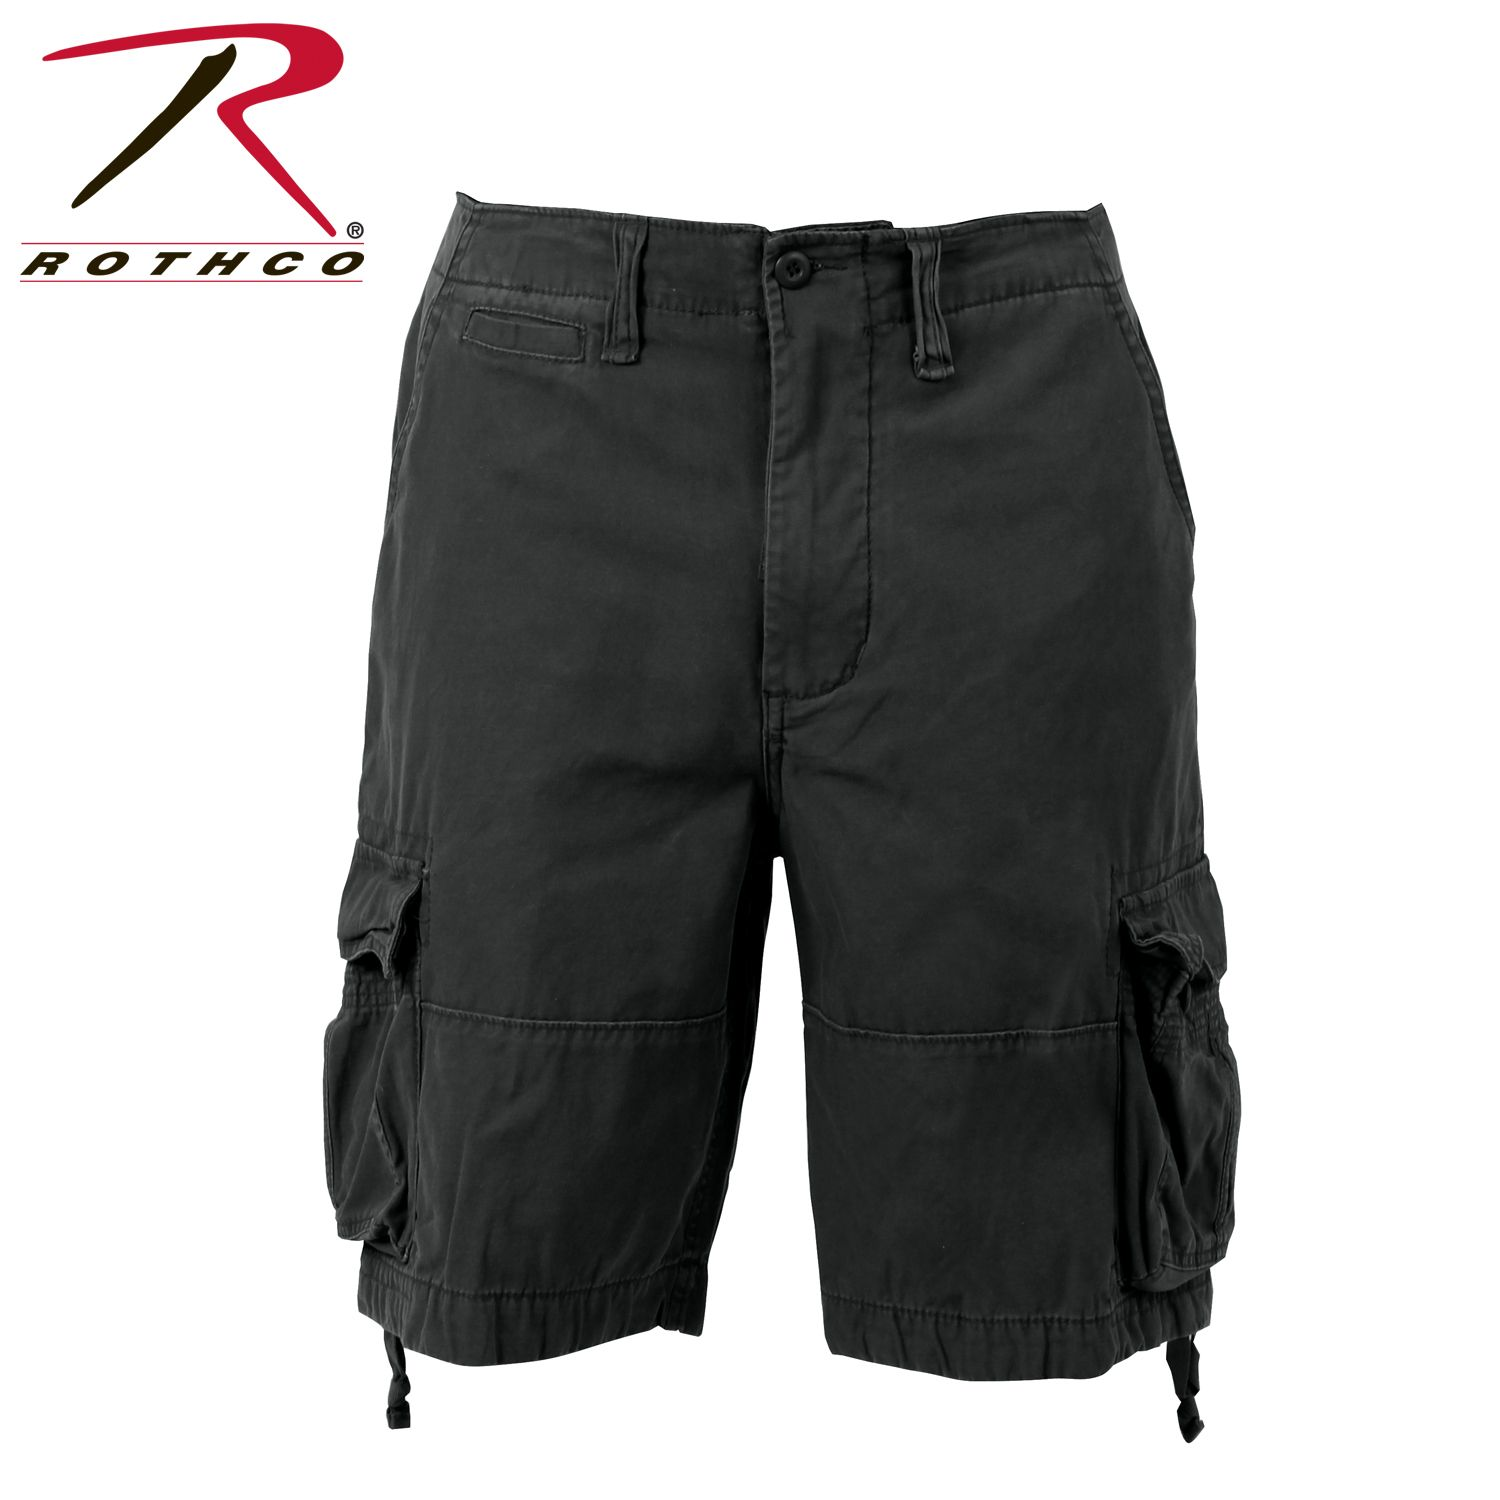 40236d6402 Vintage Infantry Utility shorts | Rothco Clothing | Vintage shorts ...